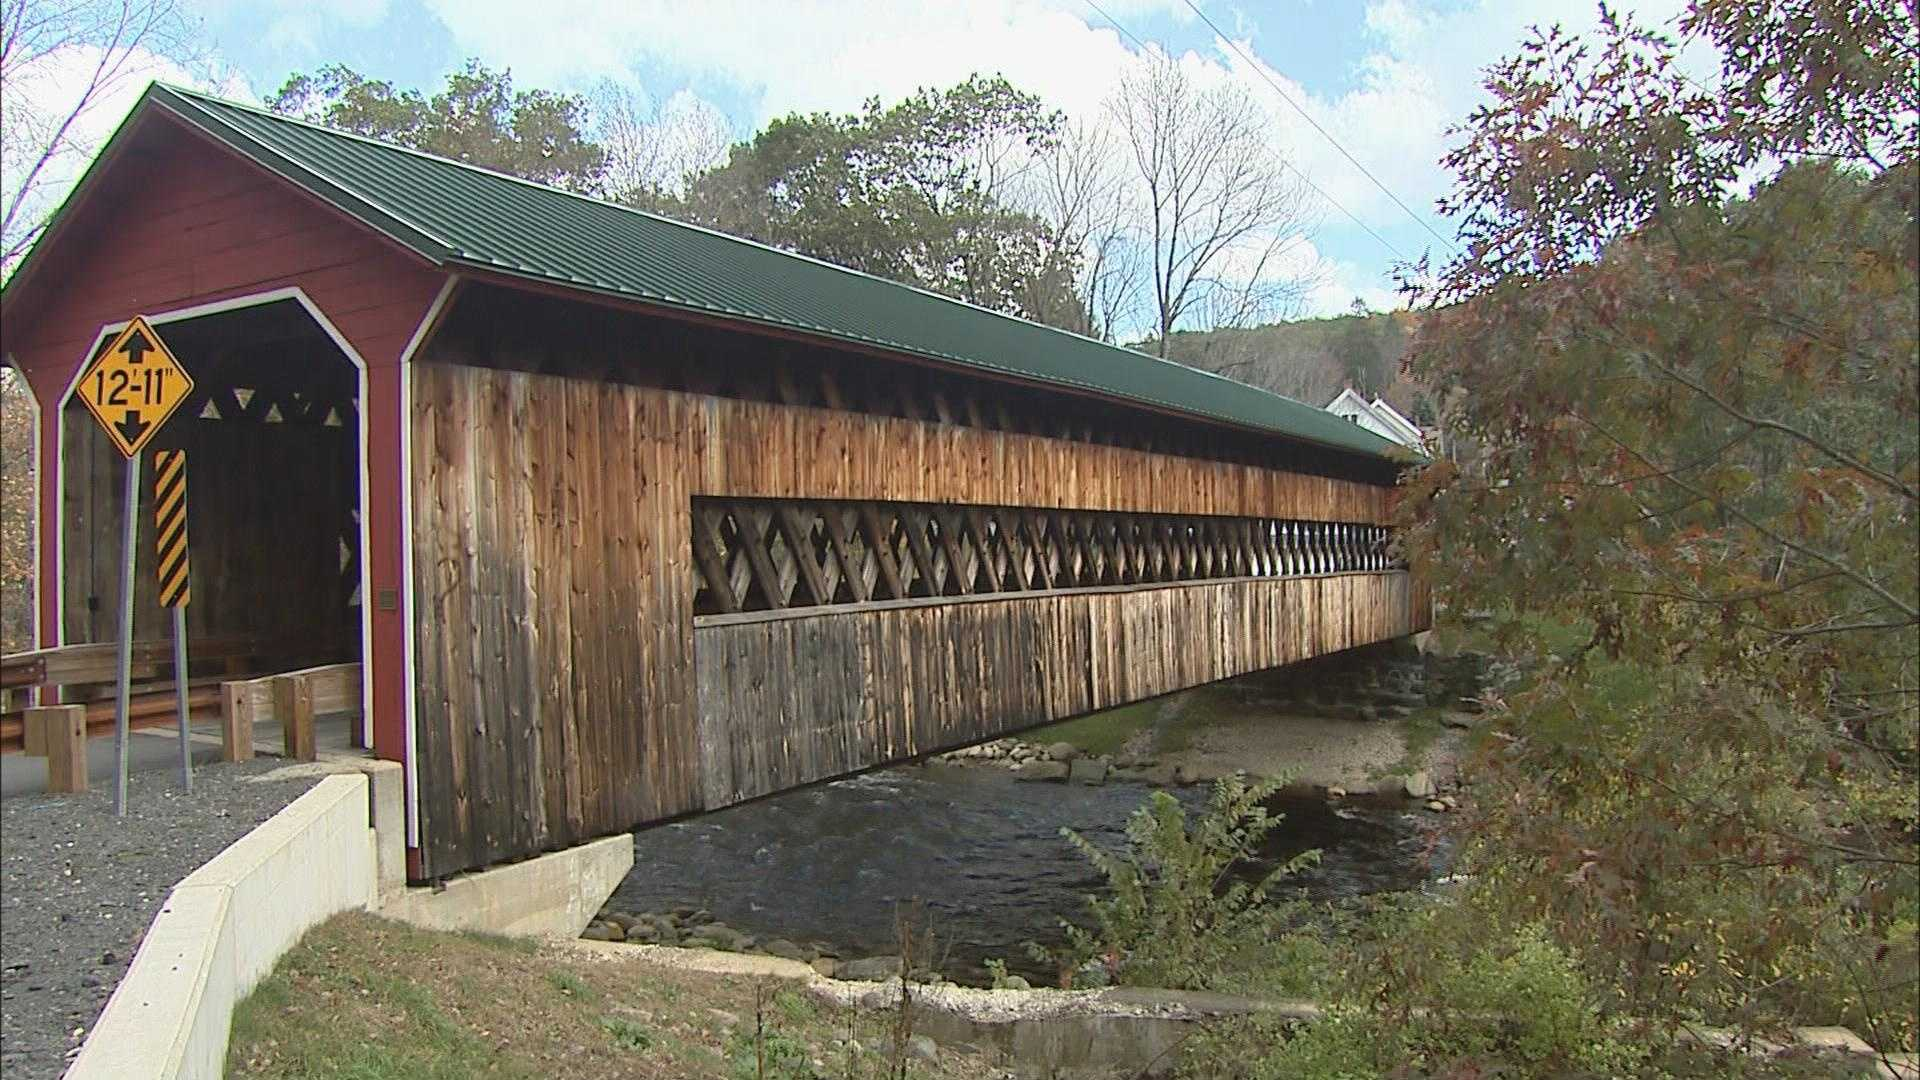 MSBR Hardwick  Covered Bridge